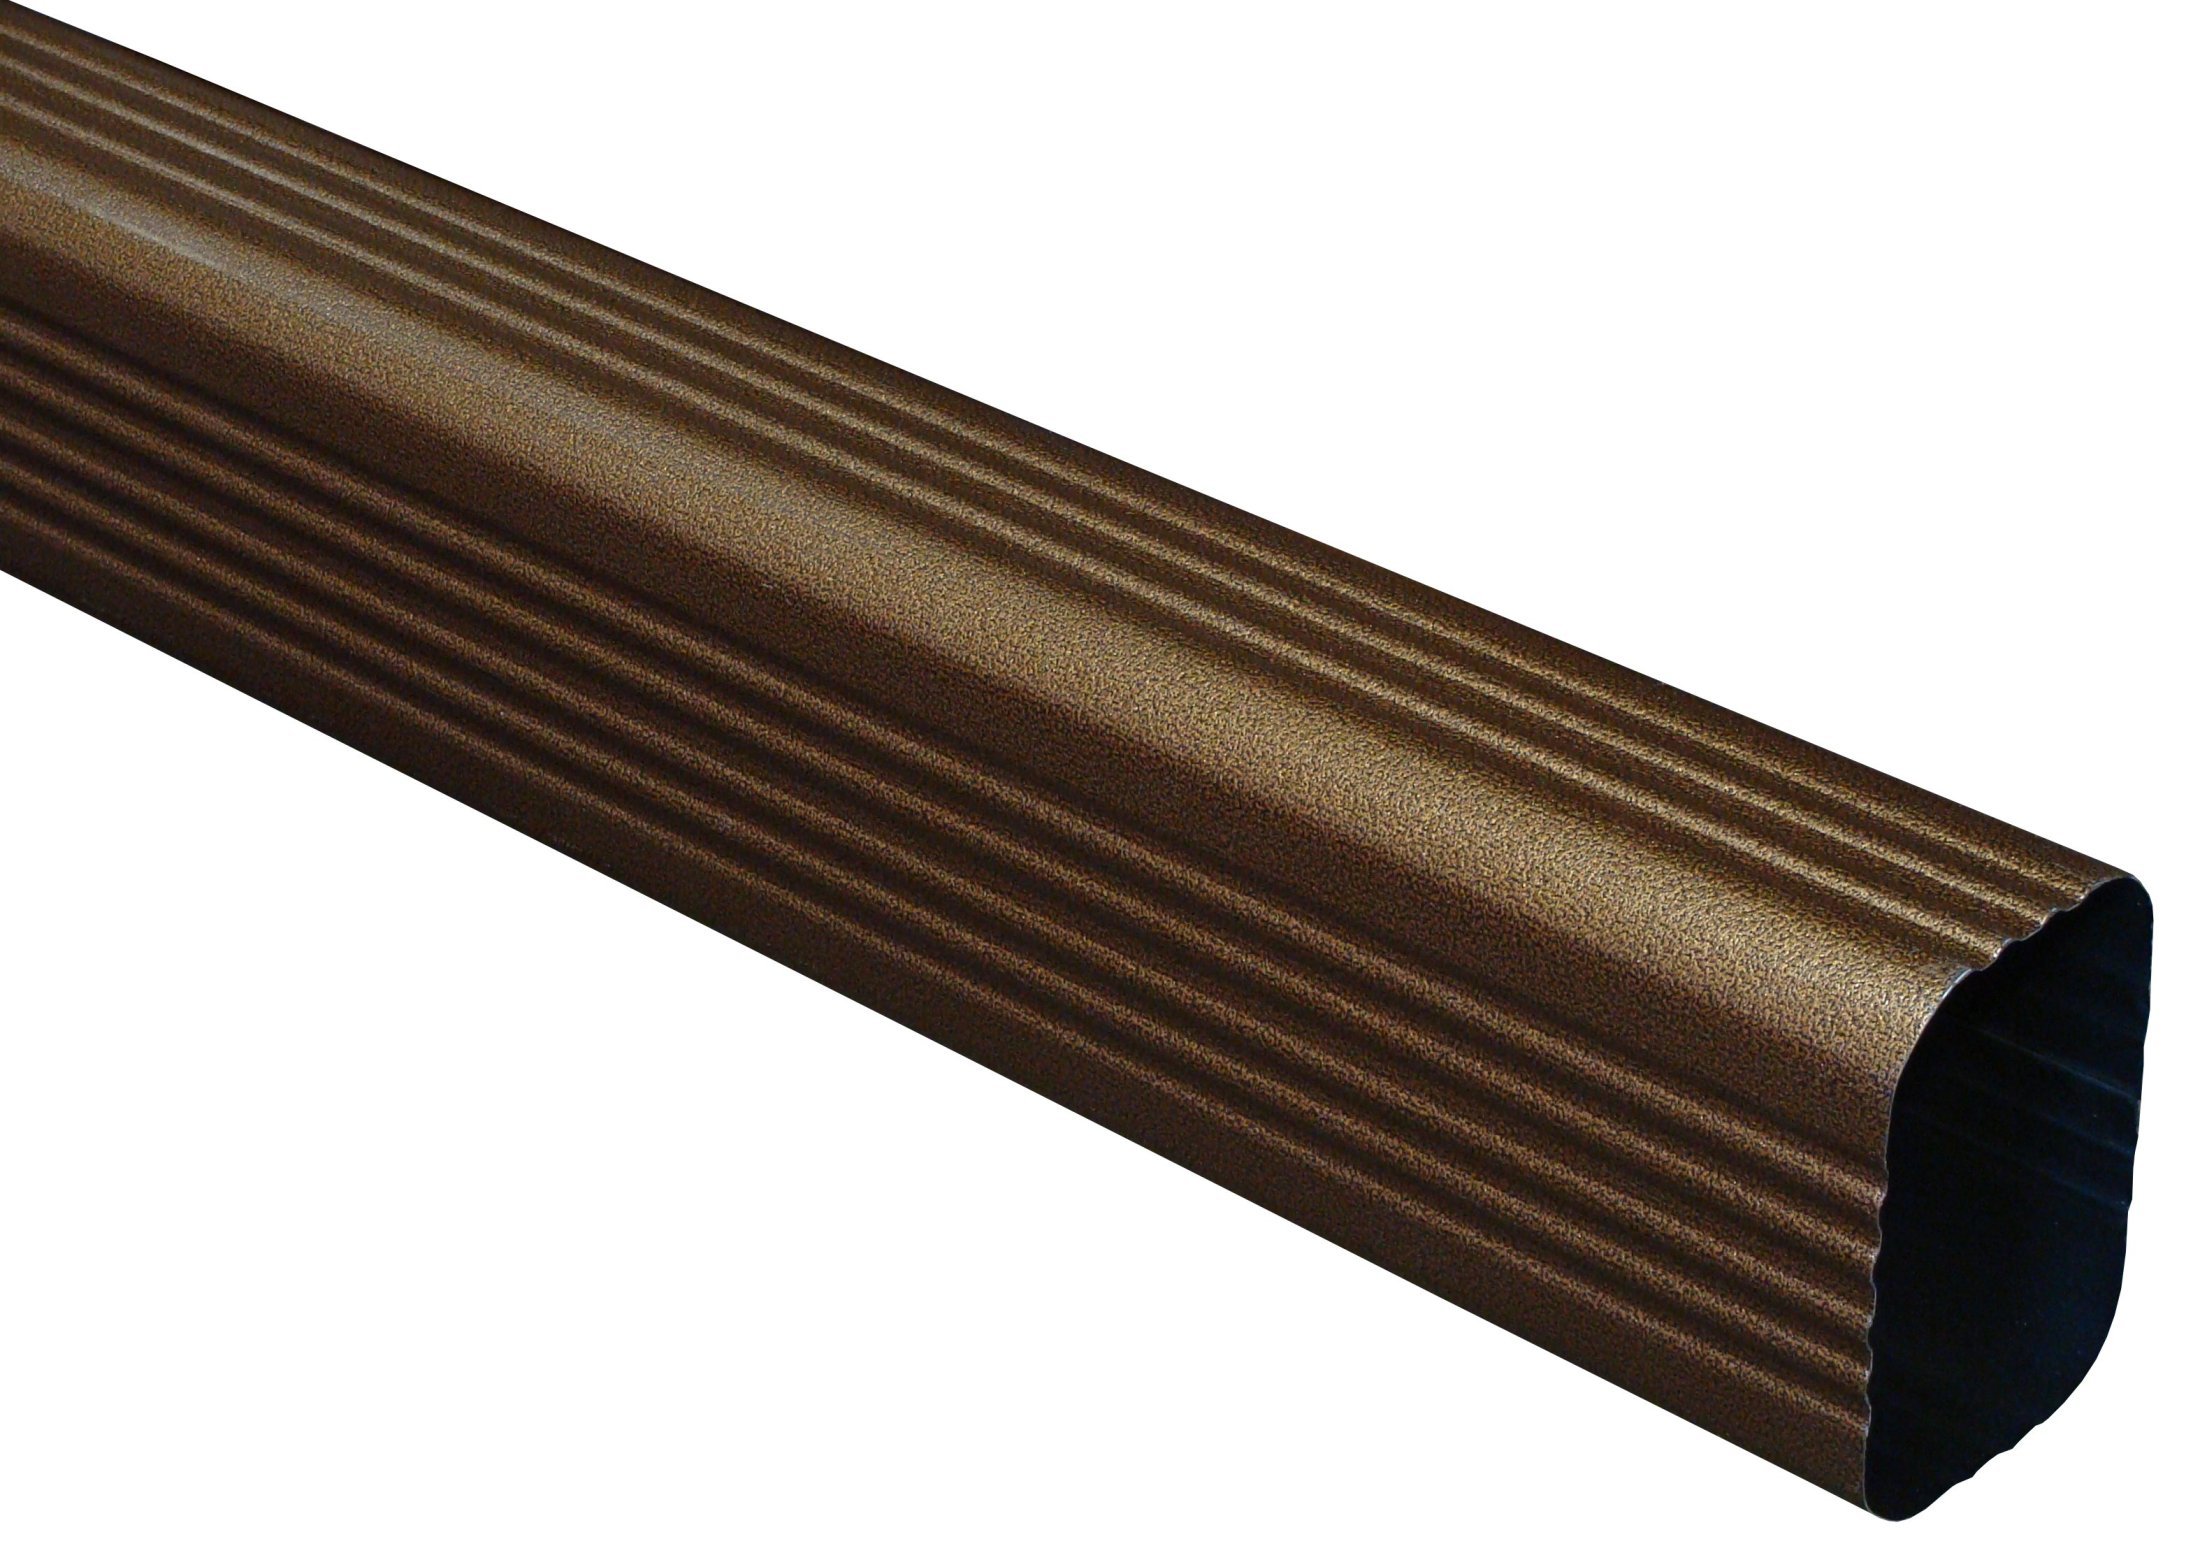 Designer Copper Aluminum Downspouts Are Vertical Pipes